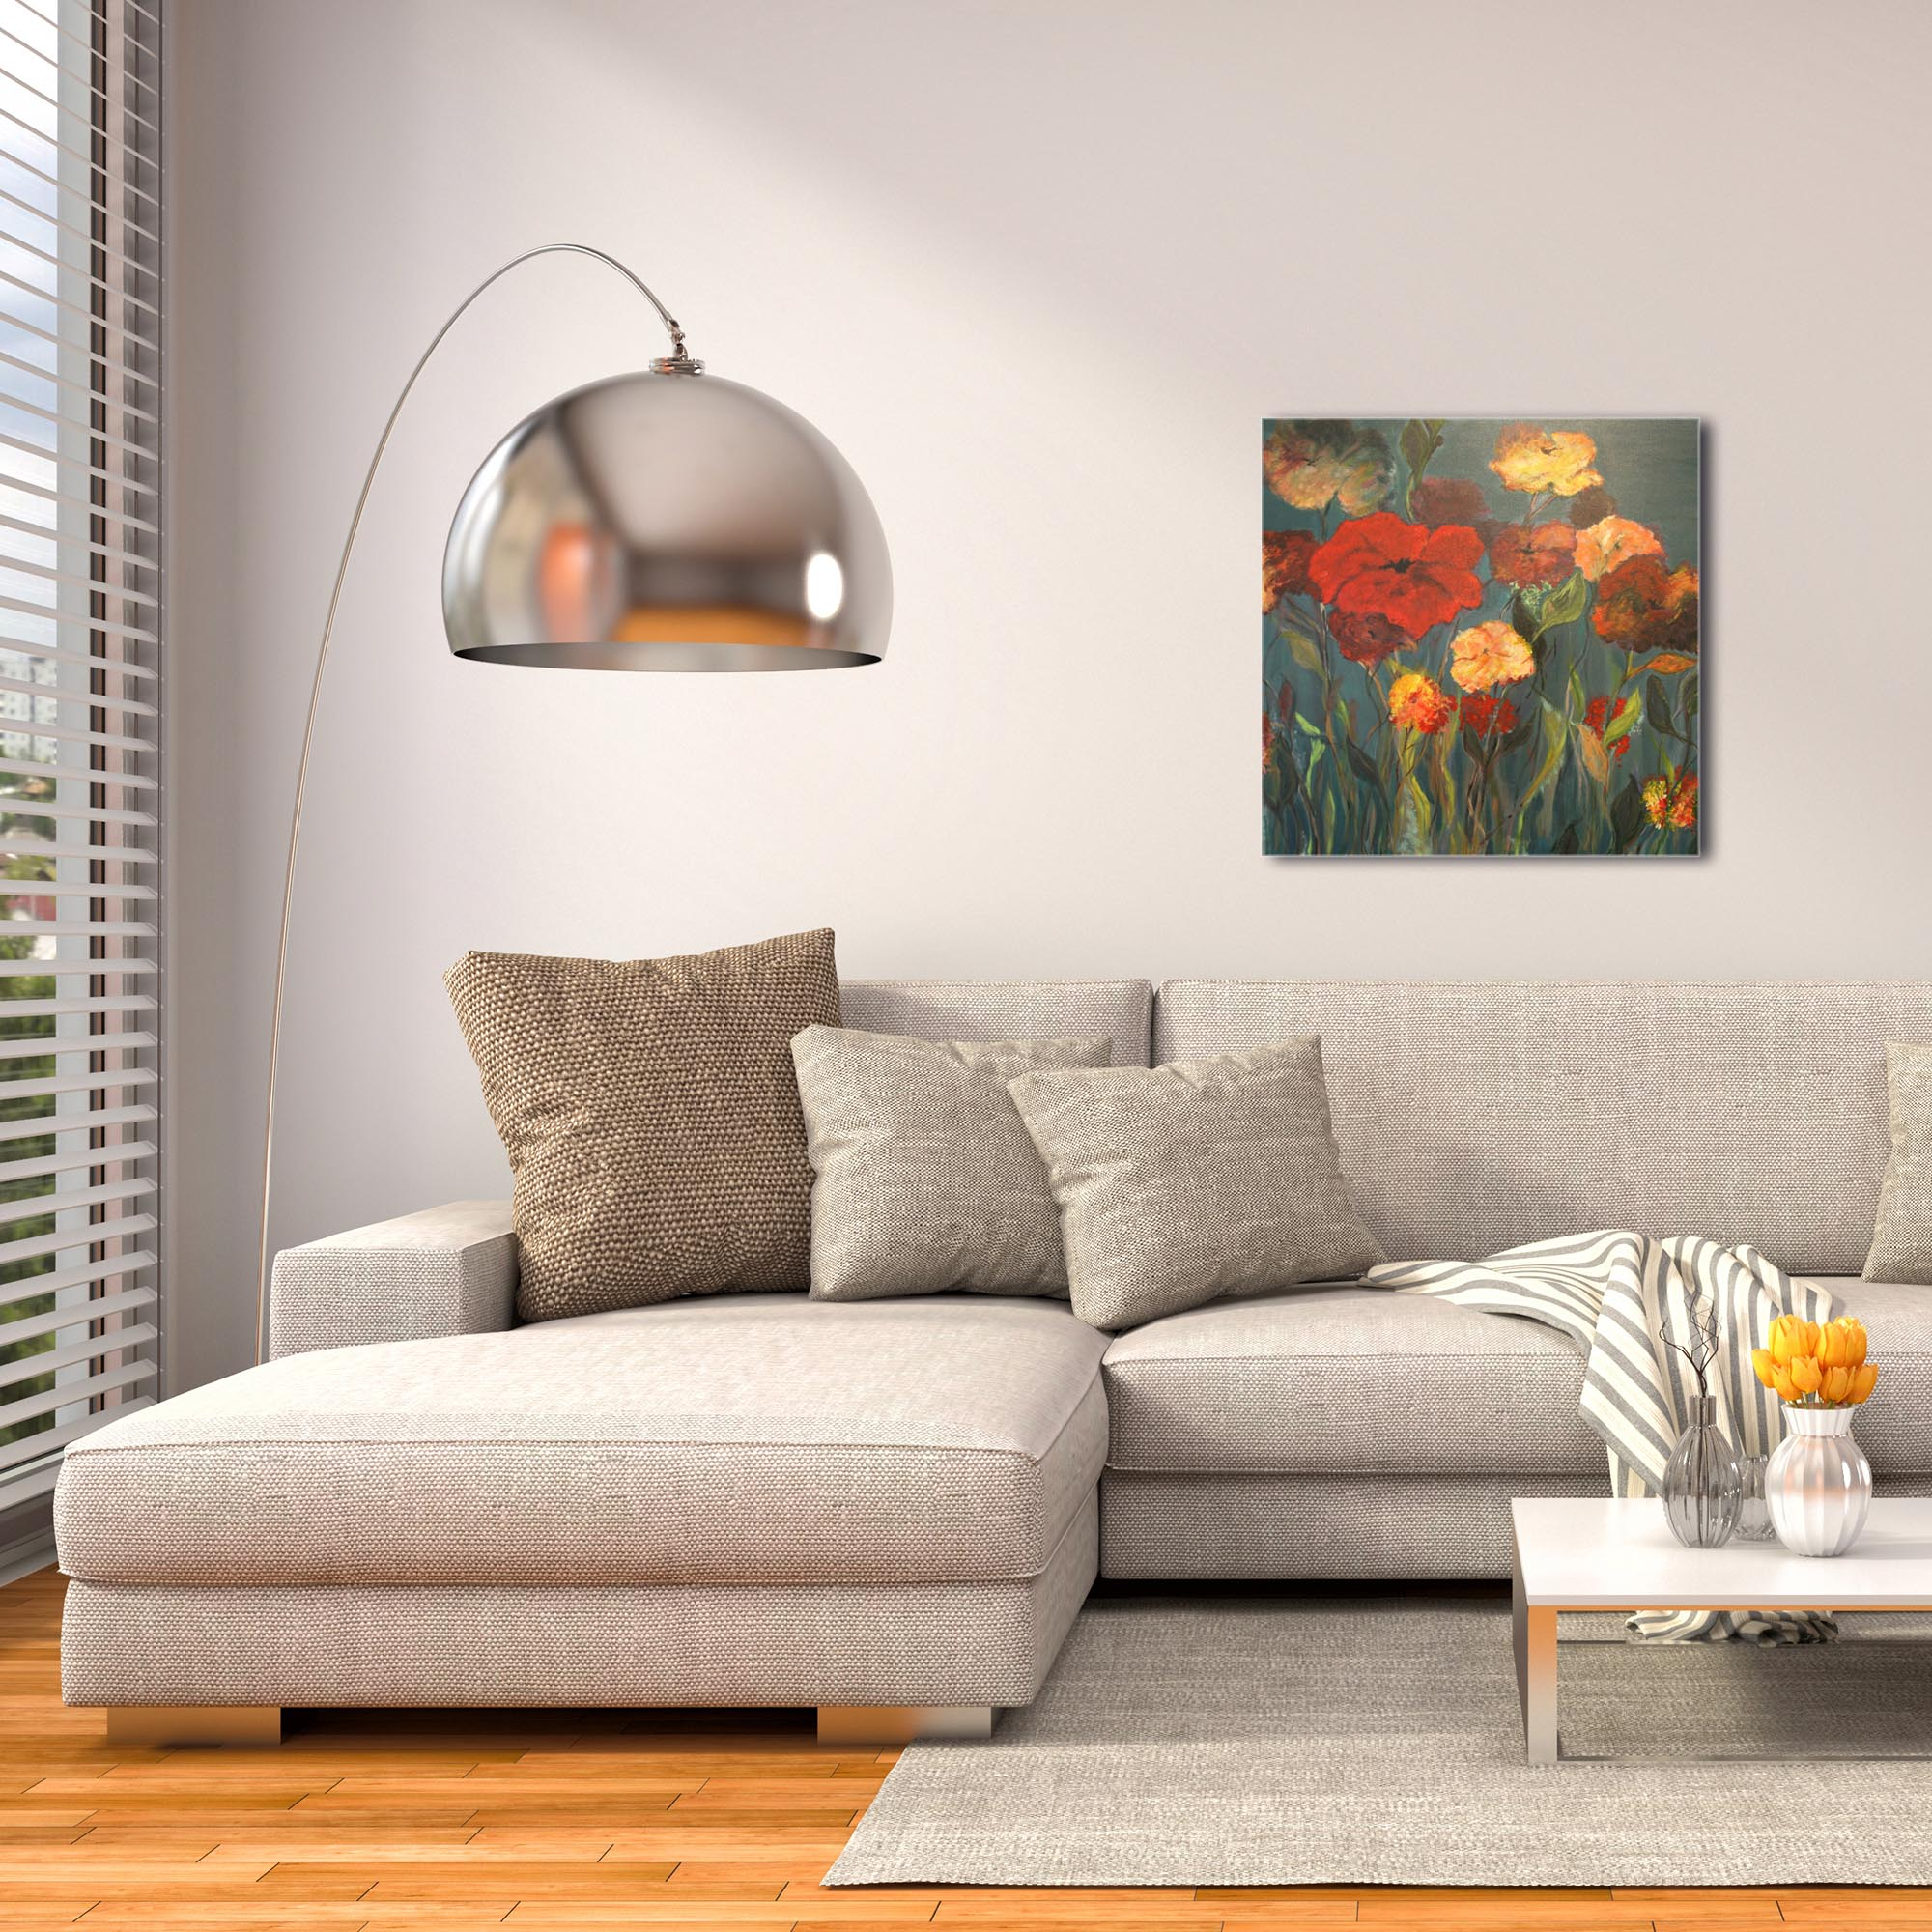 Traditional Wall Art 'Flower Patch' - Flower Bouquet Decor on Metal or Plexiglass - Image 3